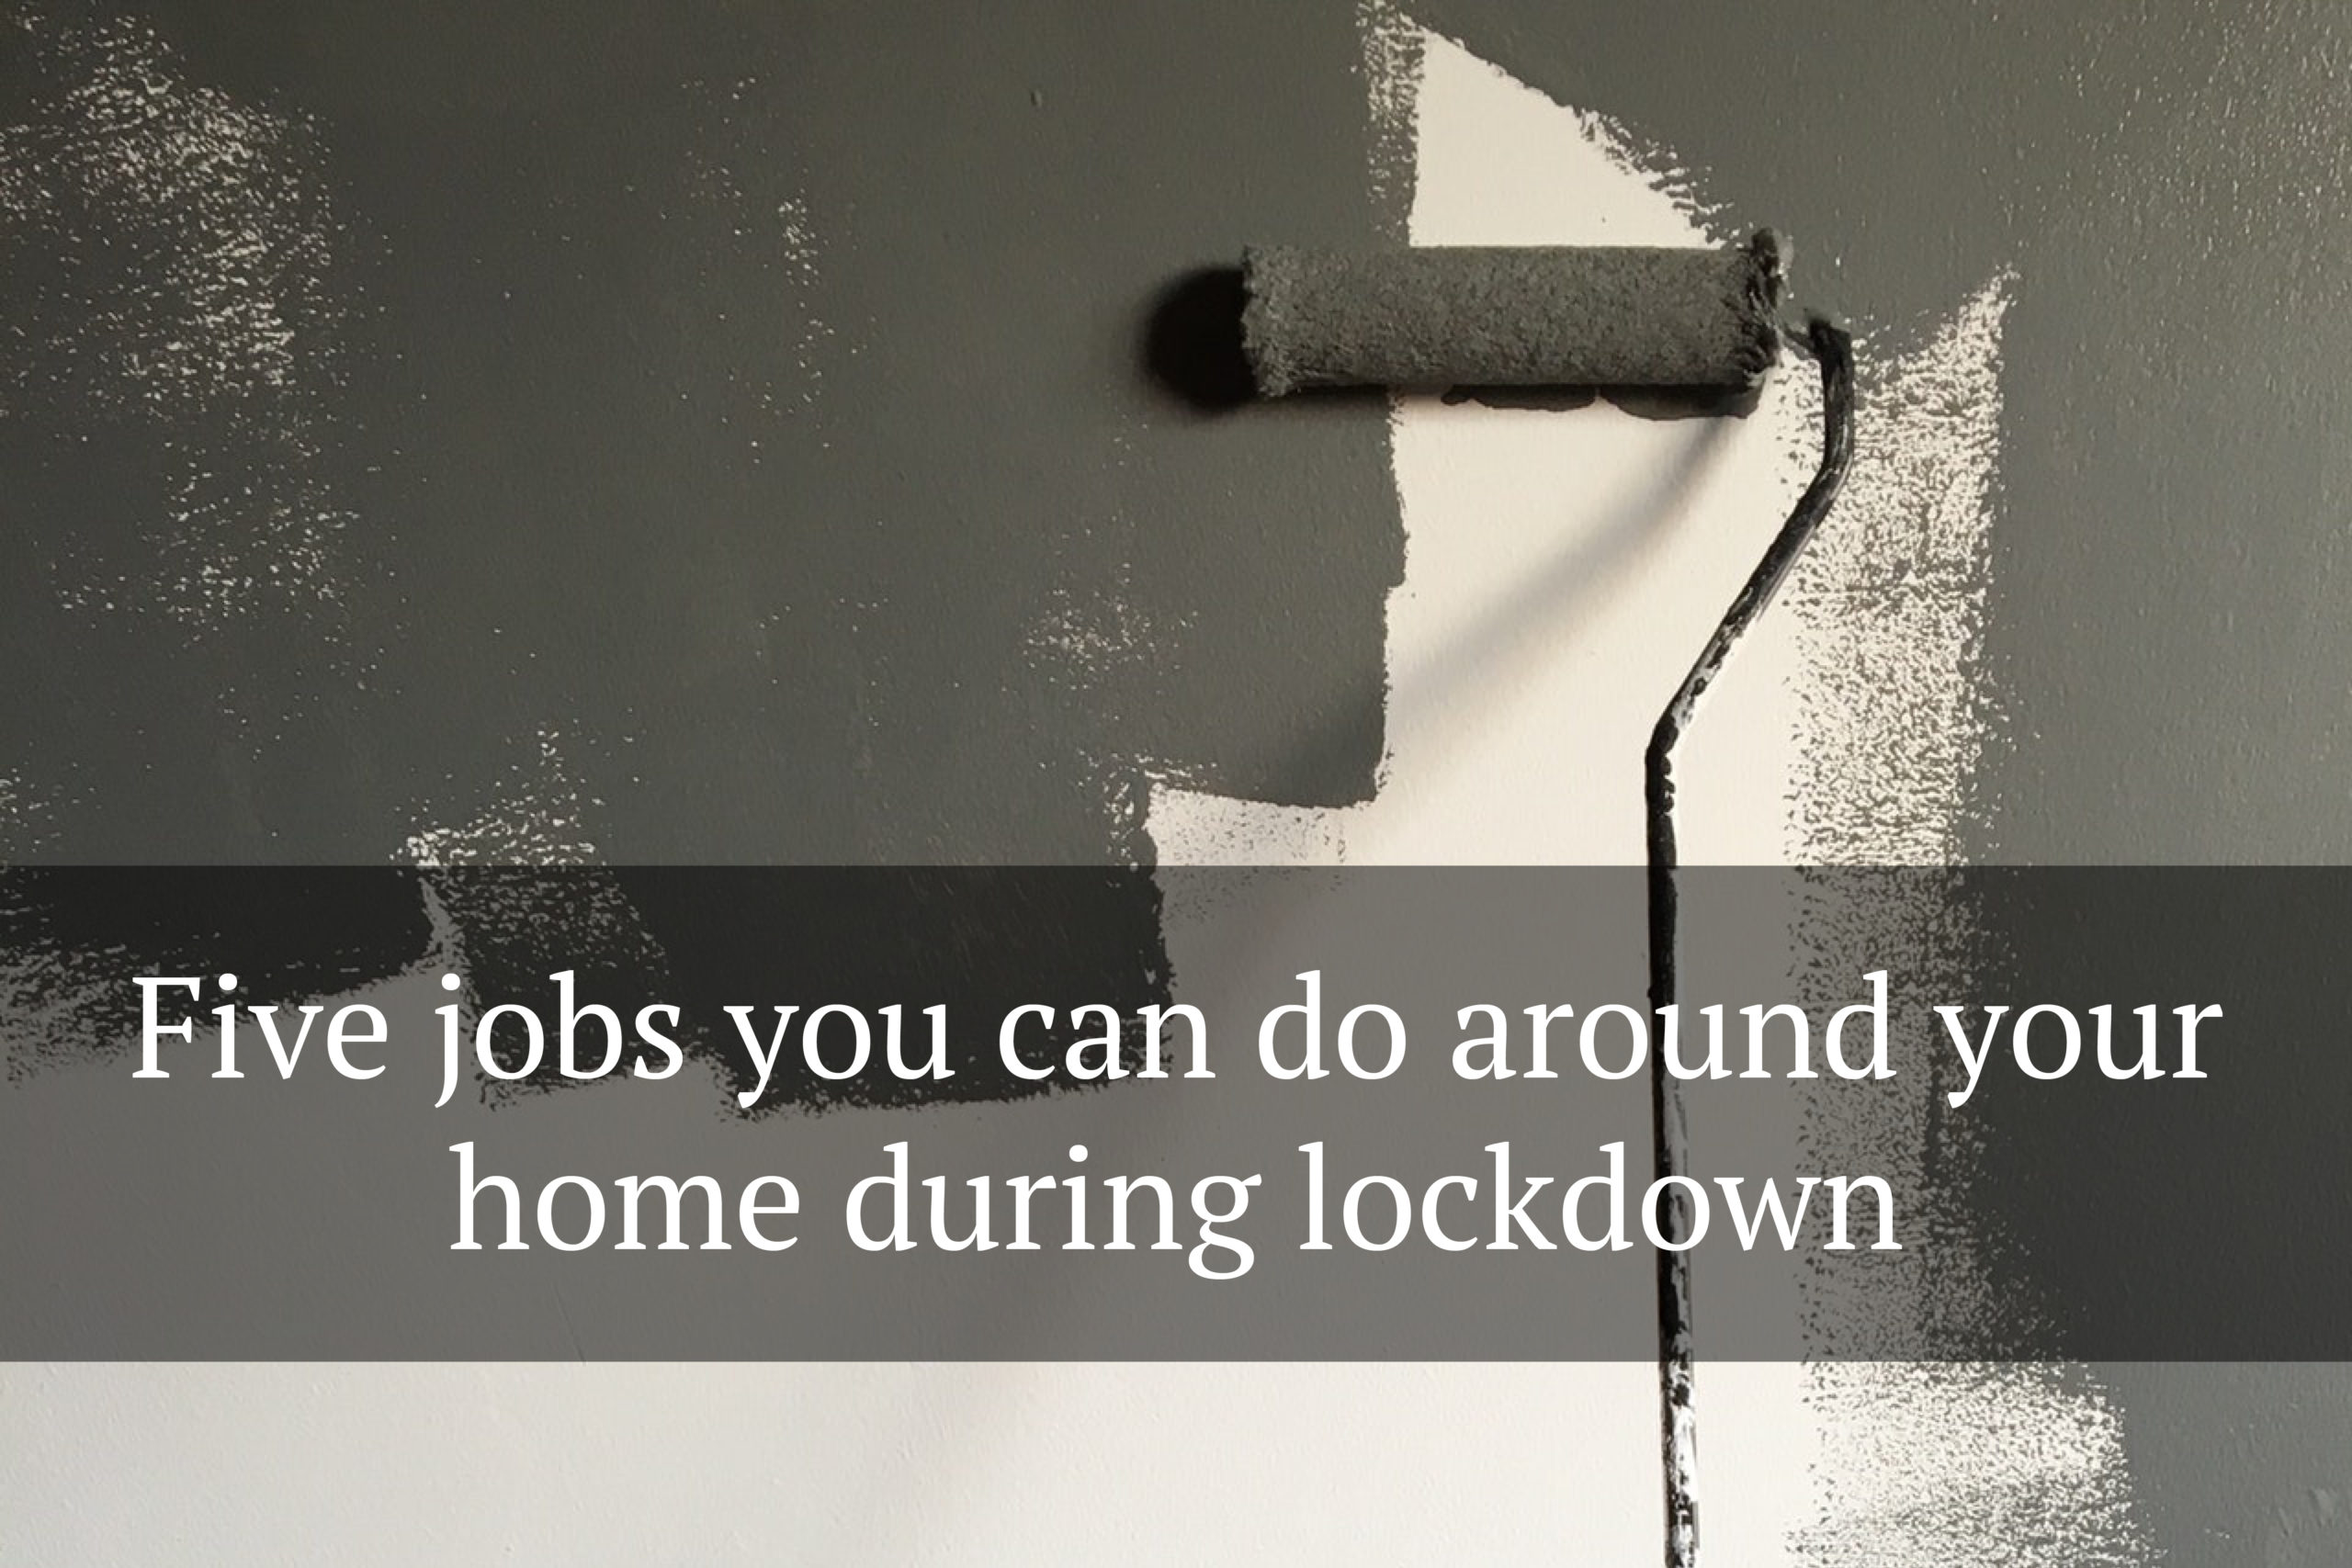 Five jobs you can do around your home during lockdown